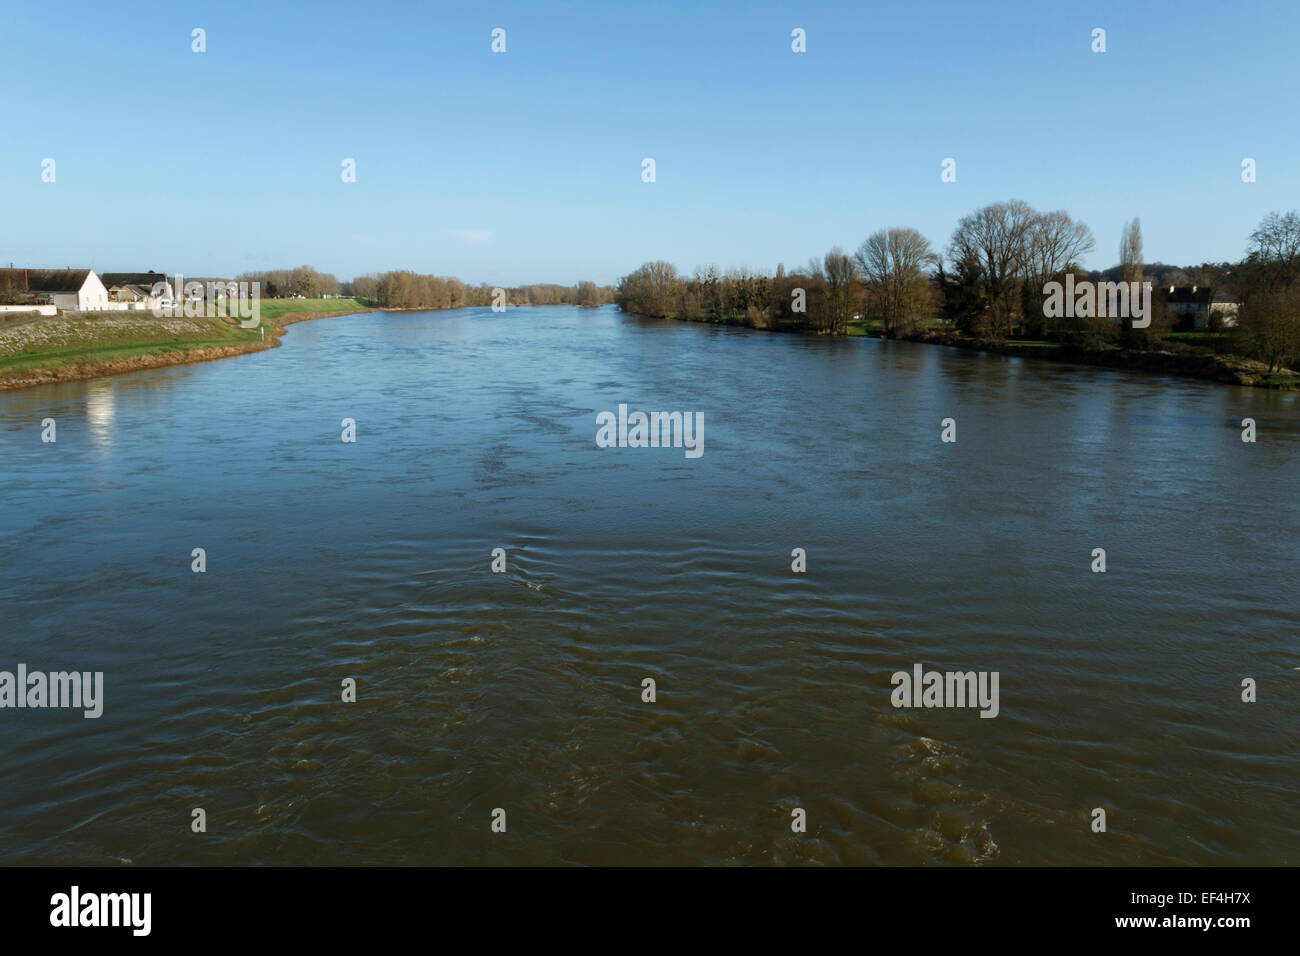 Countryside with water and houses, river Loire near Amboise, Indre et Loire, France. - Stock Image